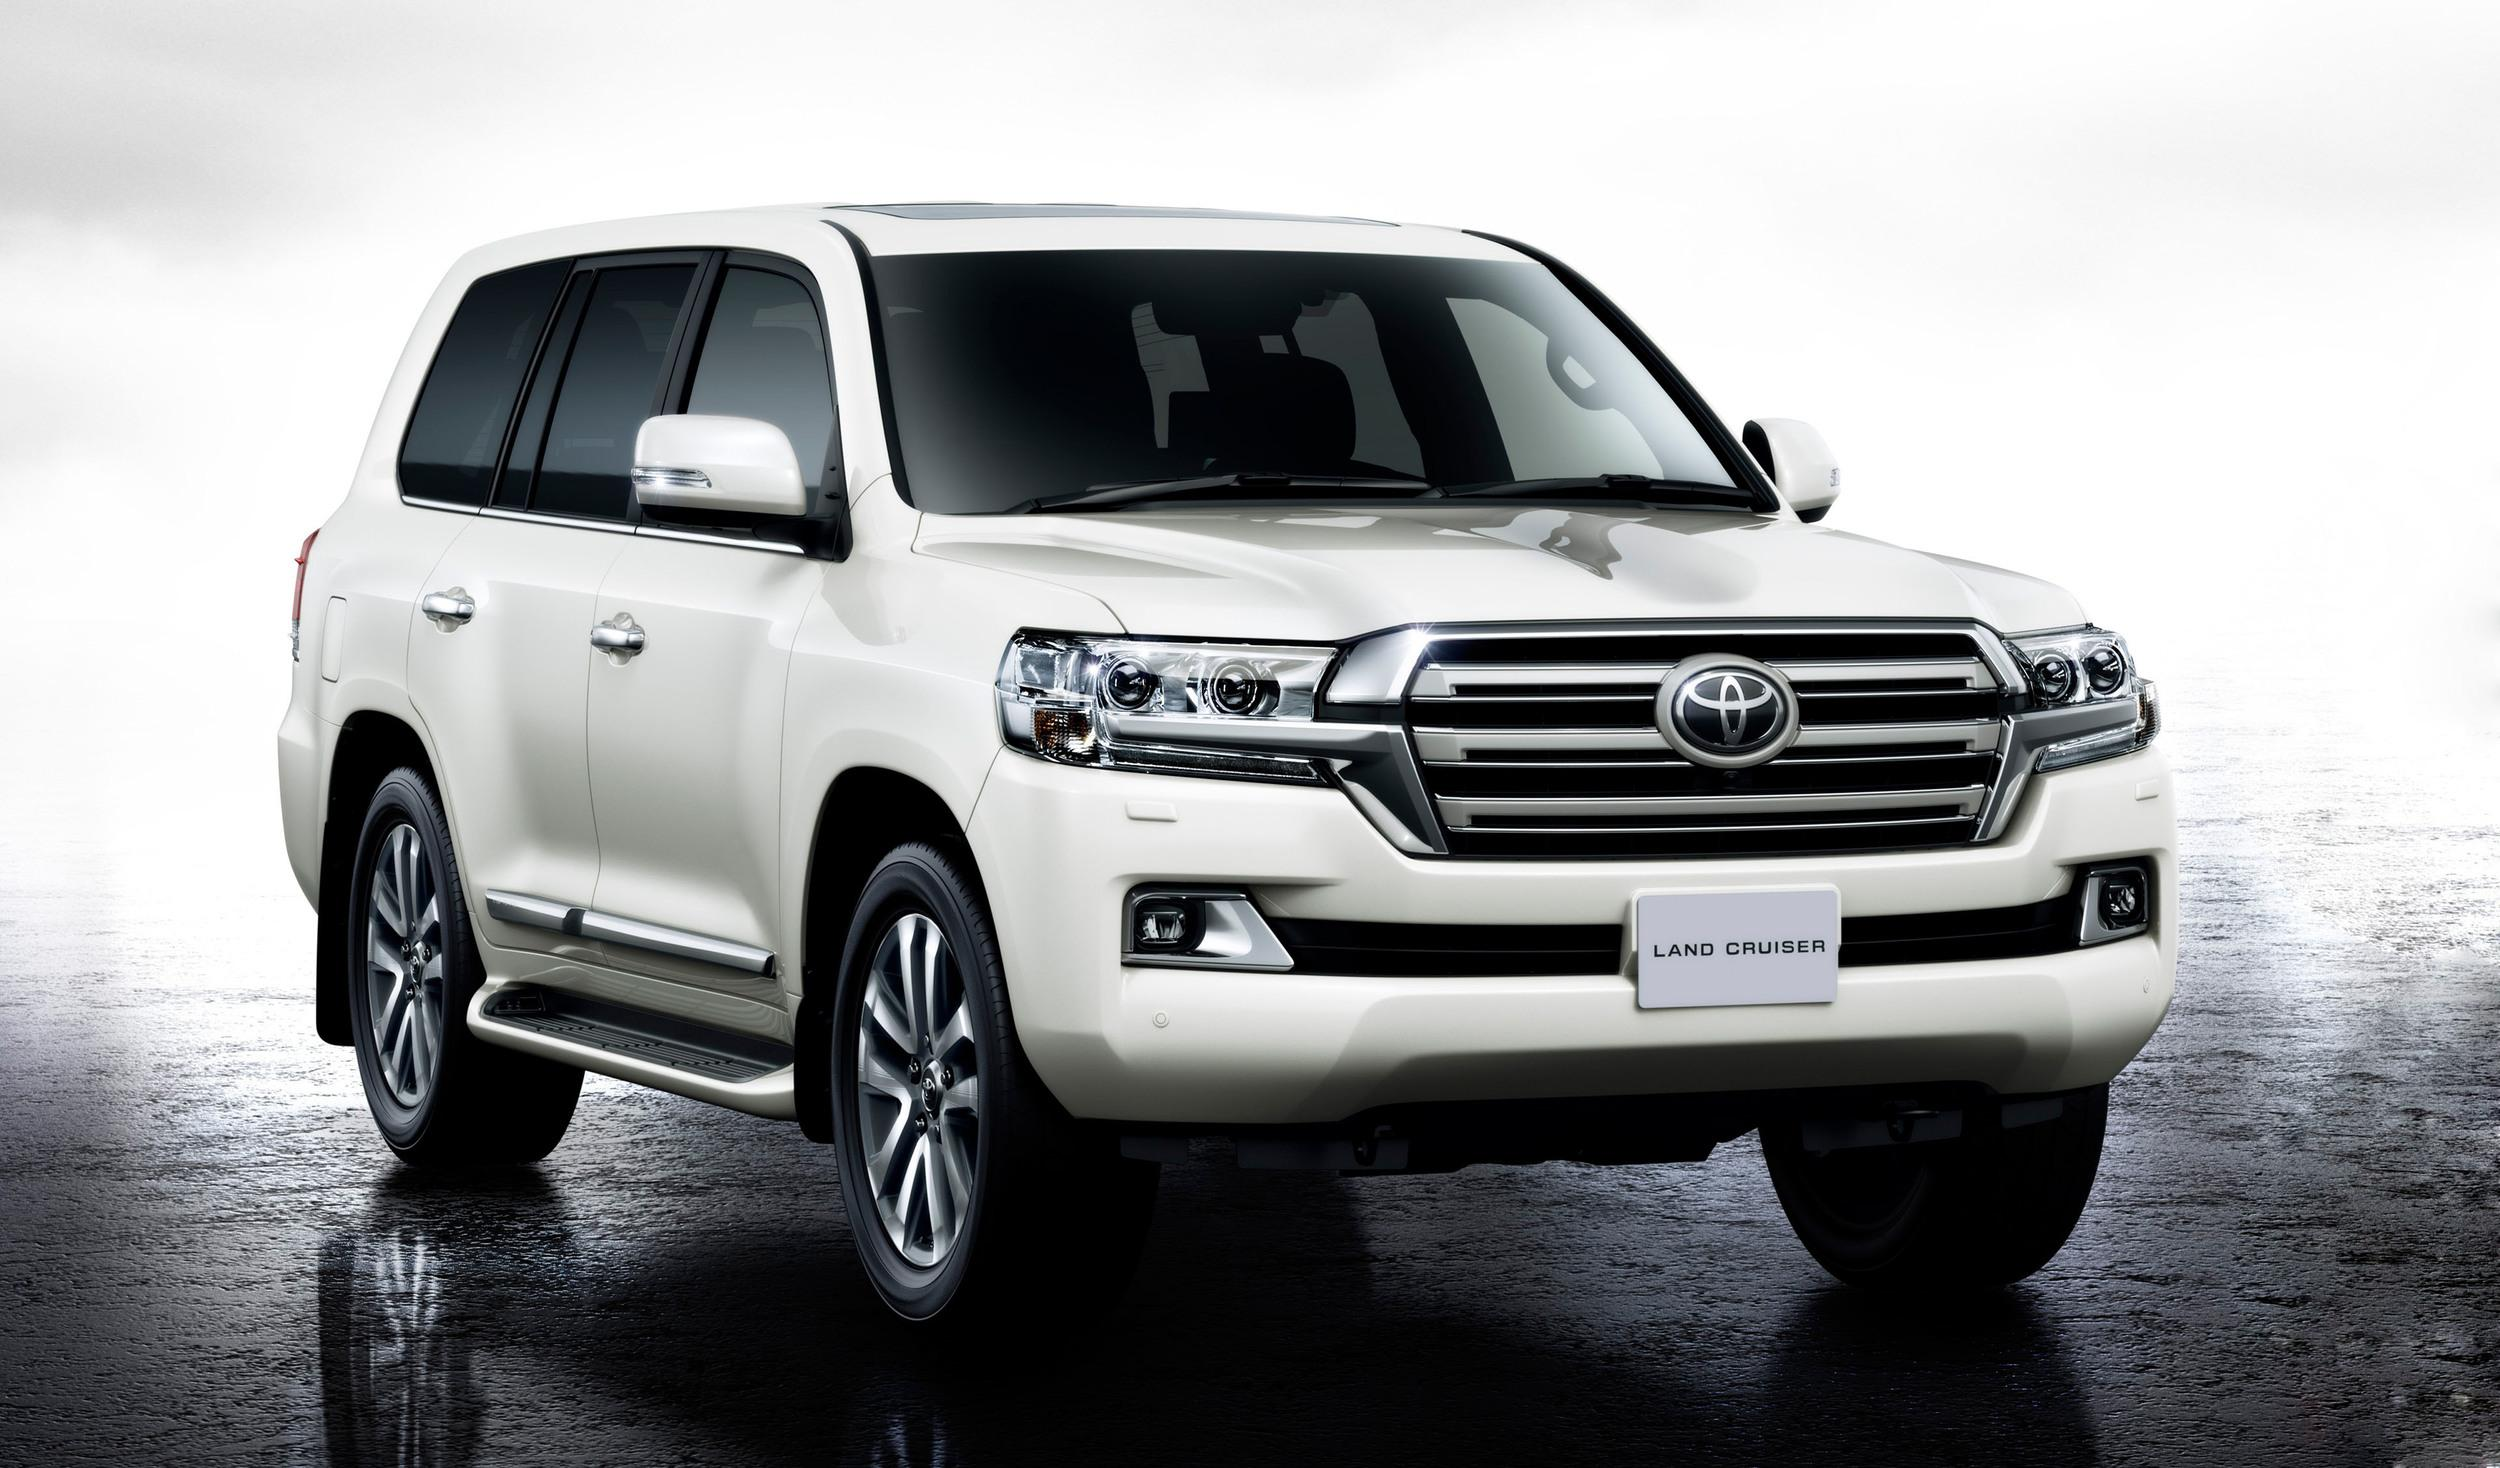 facelifted 2016 toyota land cruiser announced youwheel. Black Bedroom Furniture Sets. Home Design Ideas